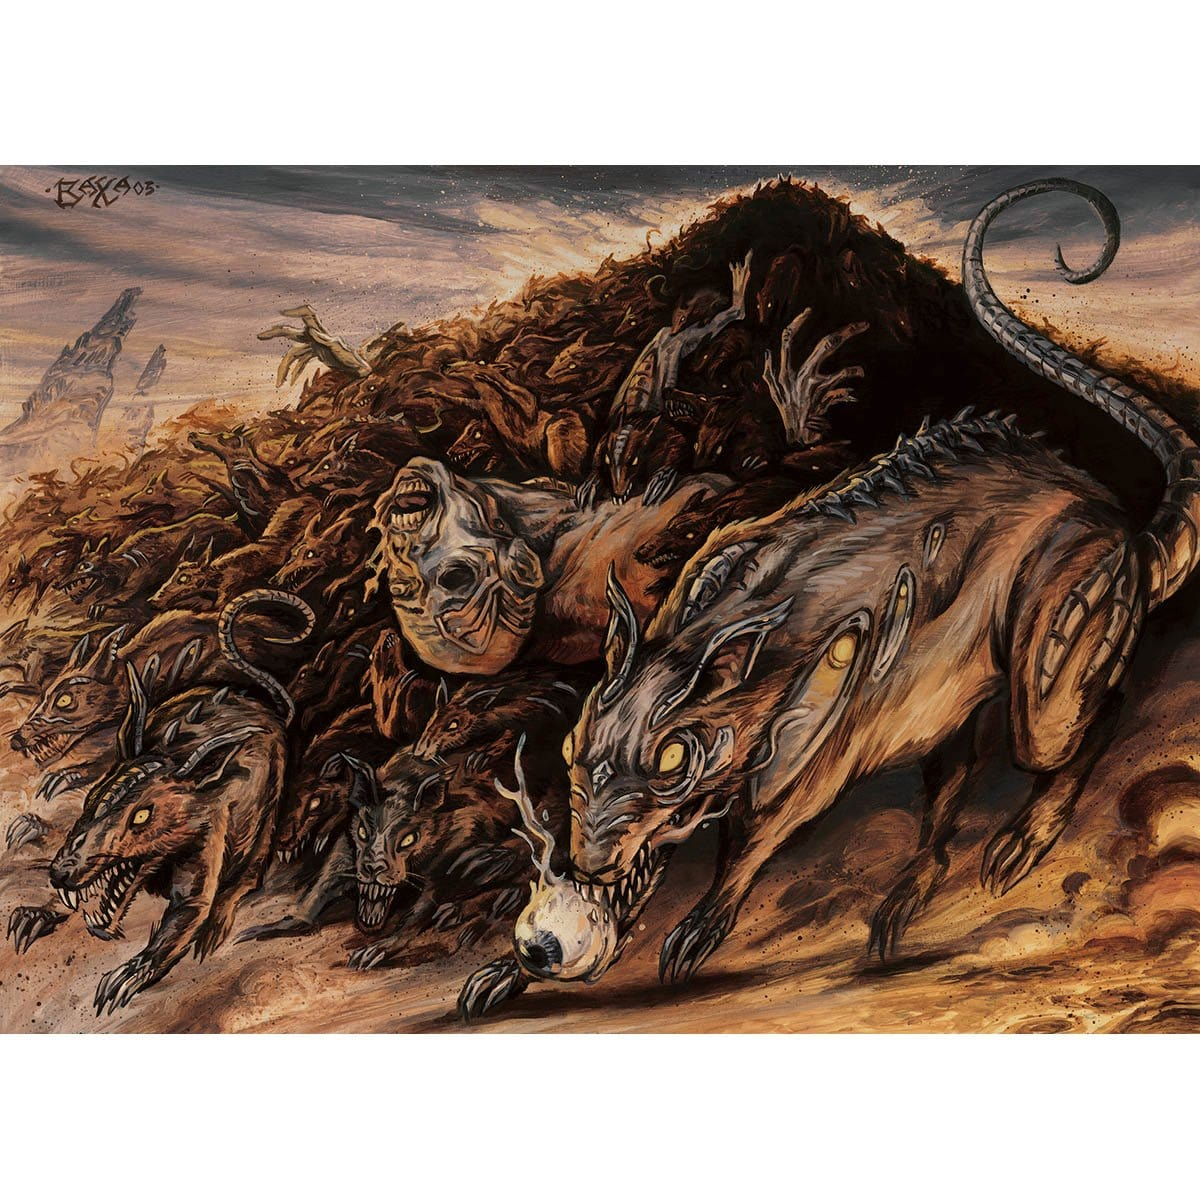 Relentless Rats Print - Print - Original Magic Art - Accessories for Magic the Gathering and other card games